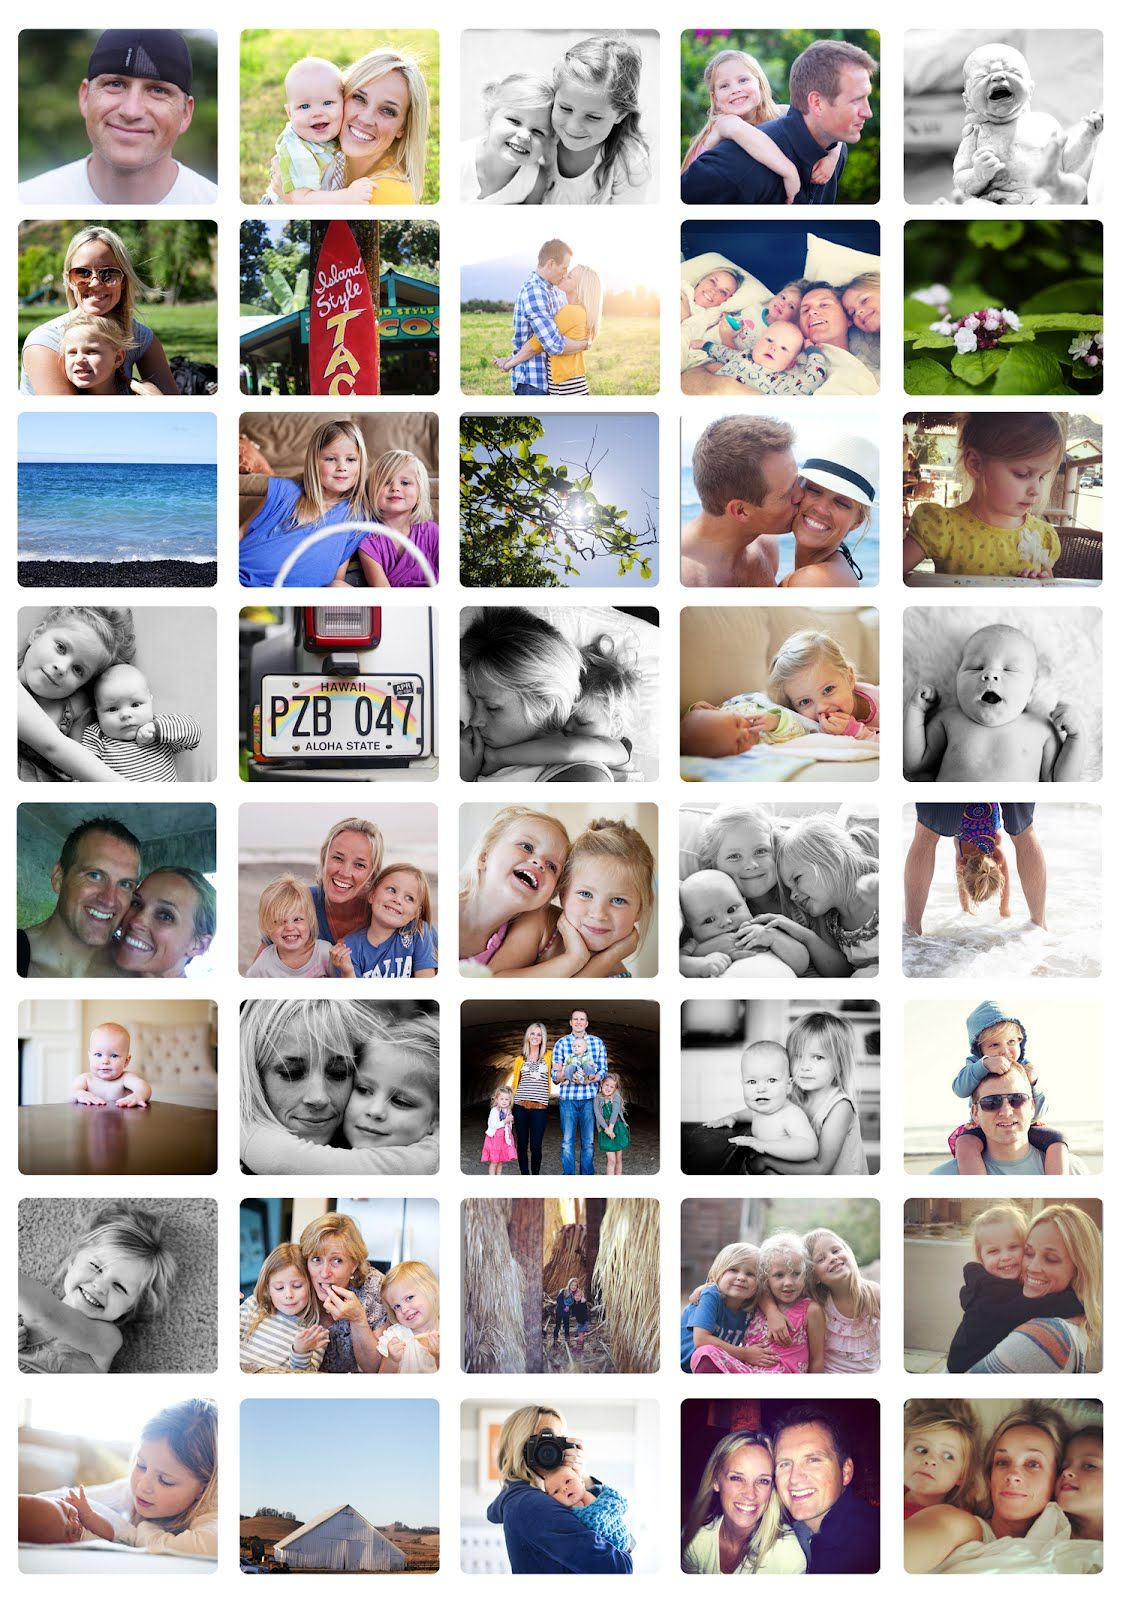 20 X 30 Inch Poster Of Various Family Photos In A Collage Love It Collage Poster Photo Projects Collage Design